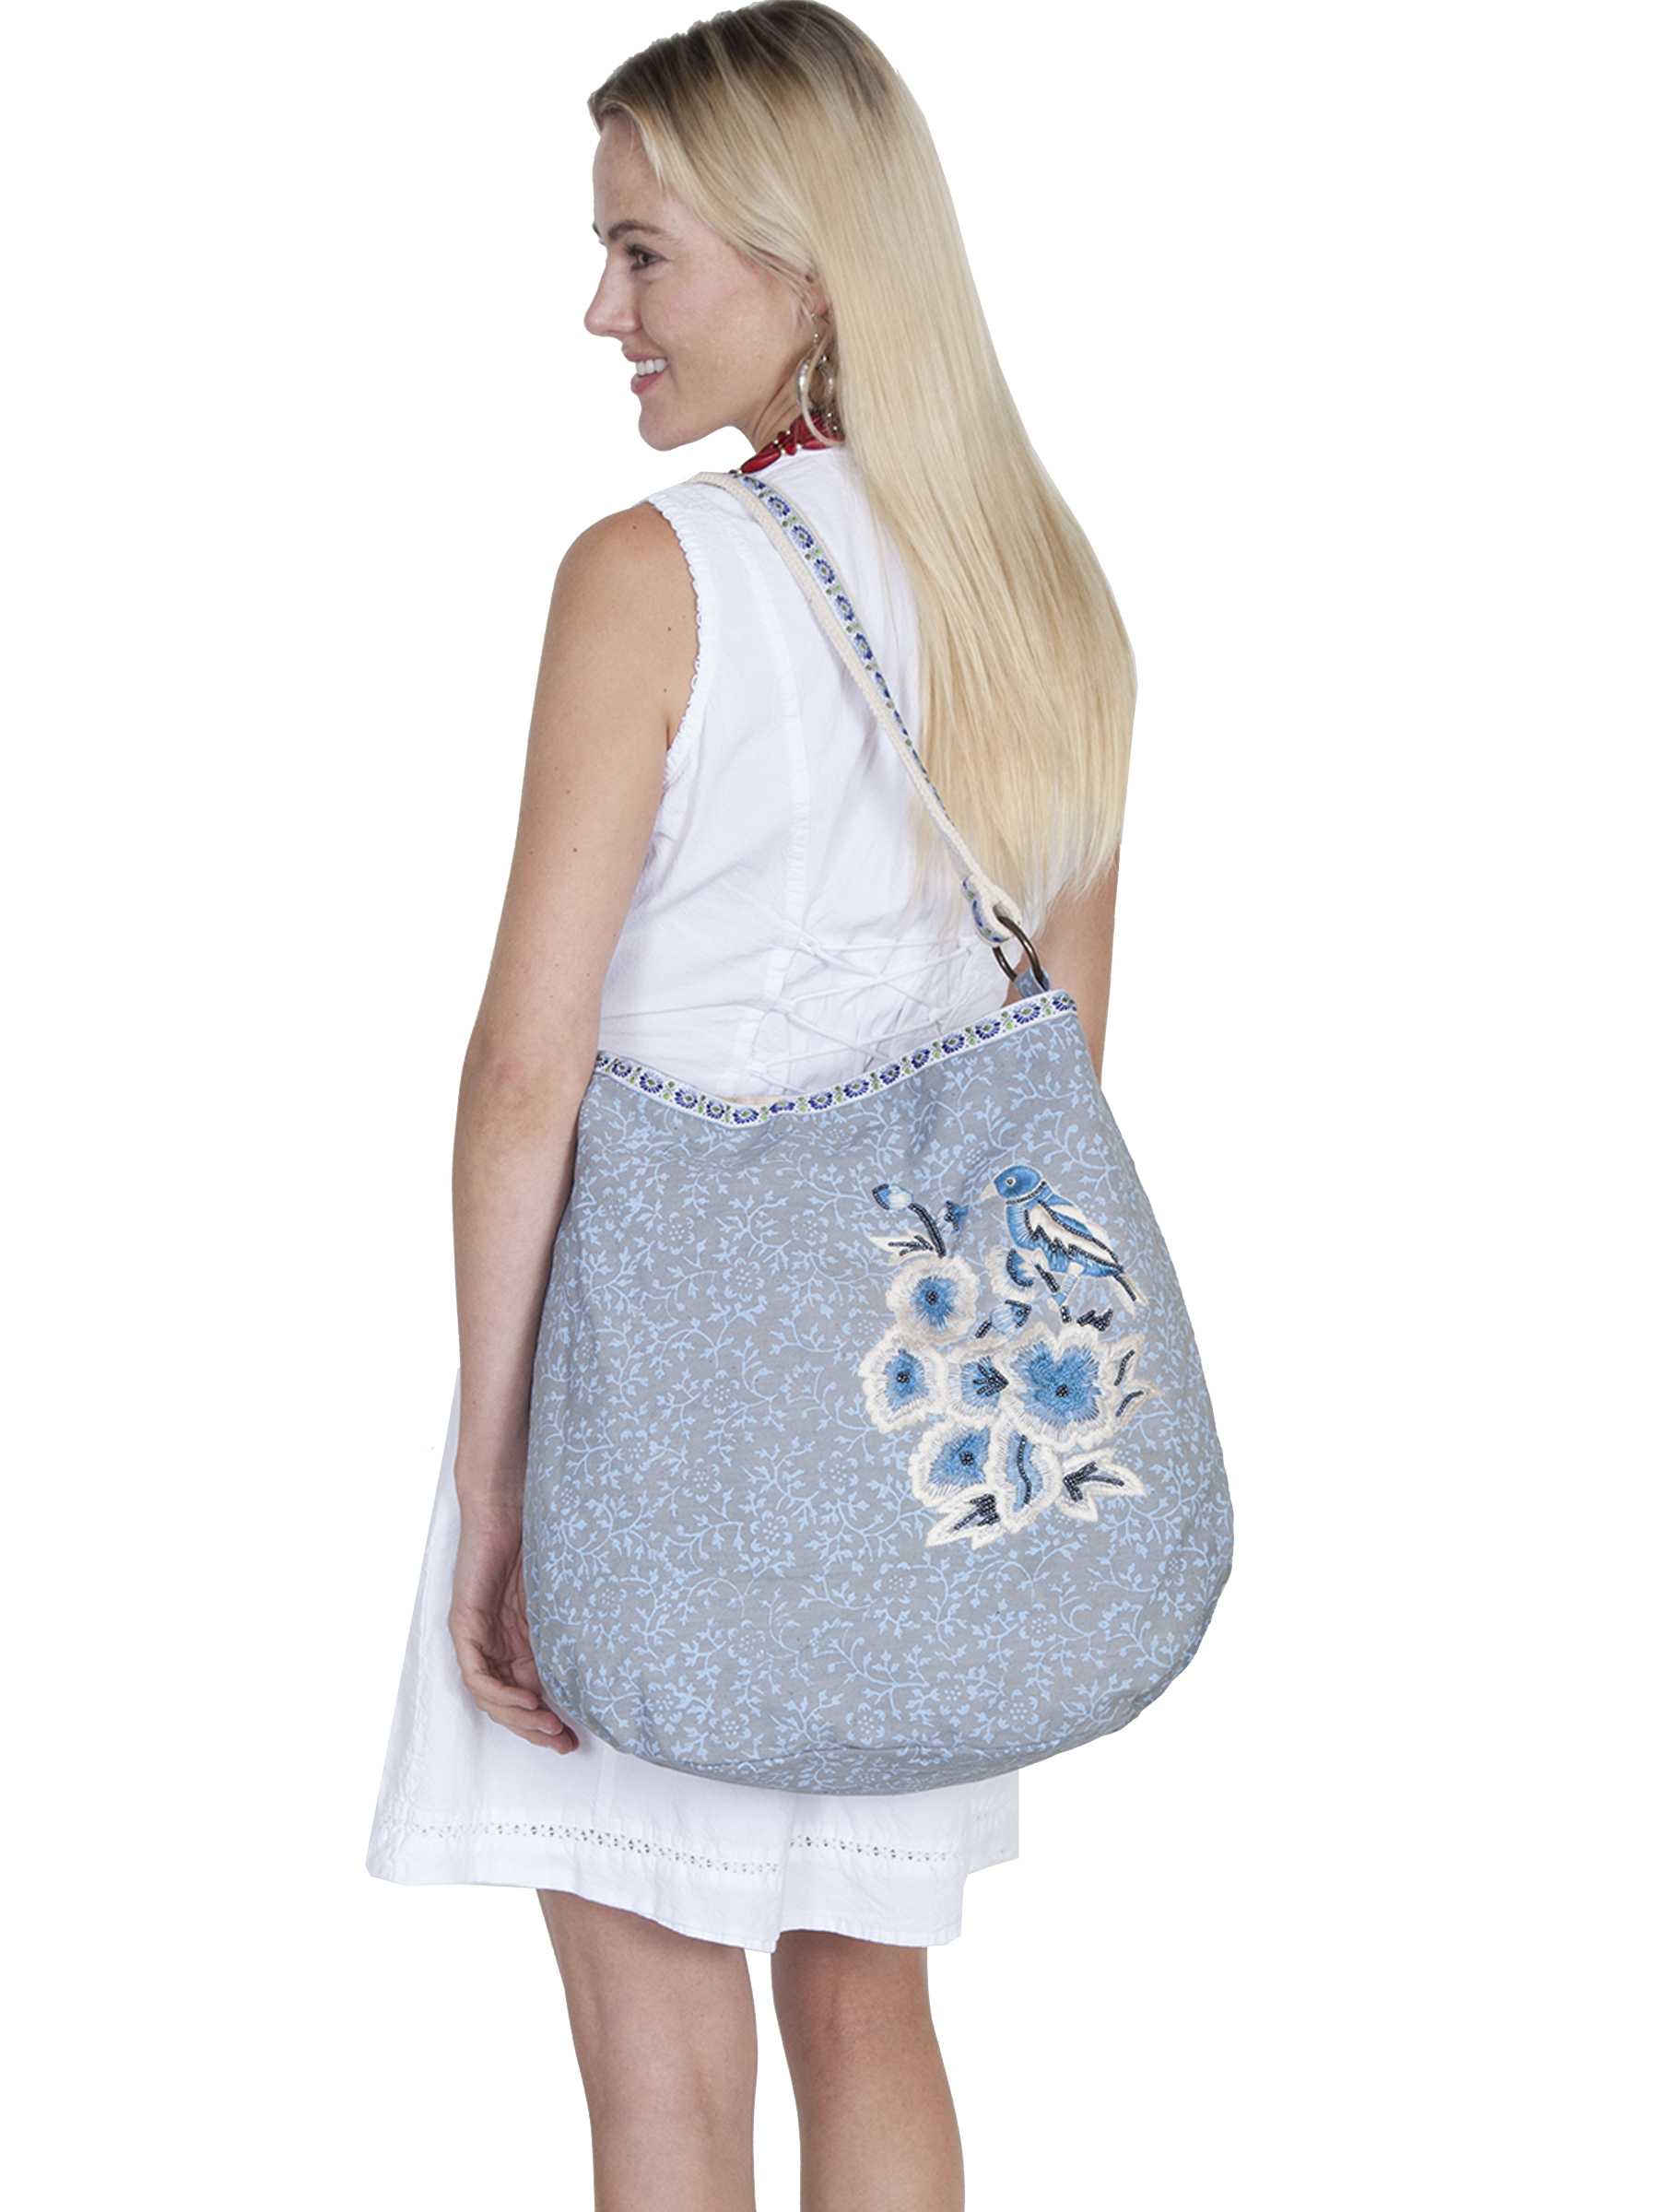 Cotton blue & grey floral print handbag